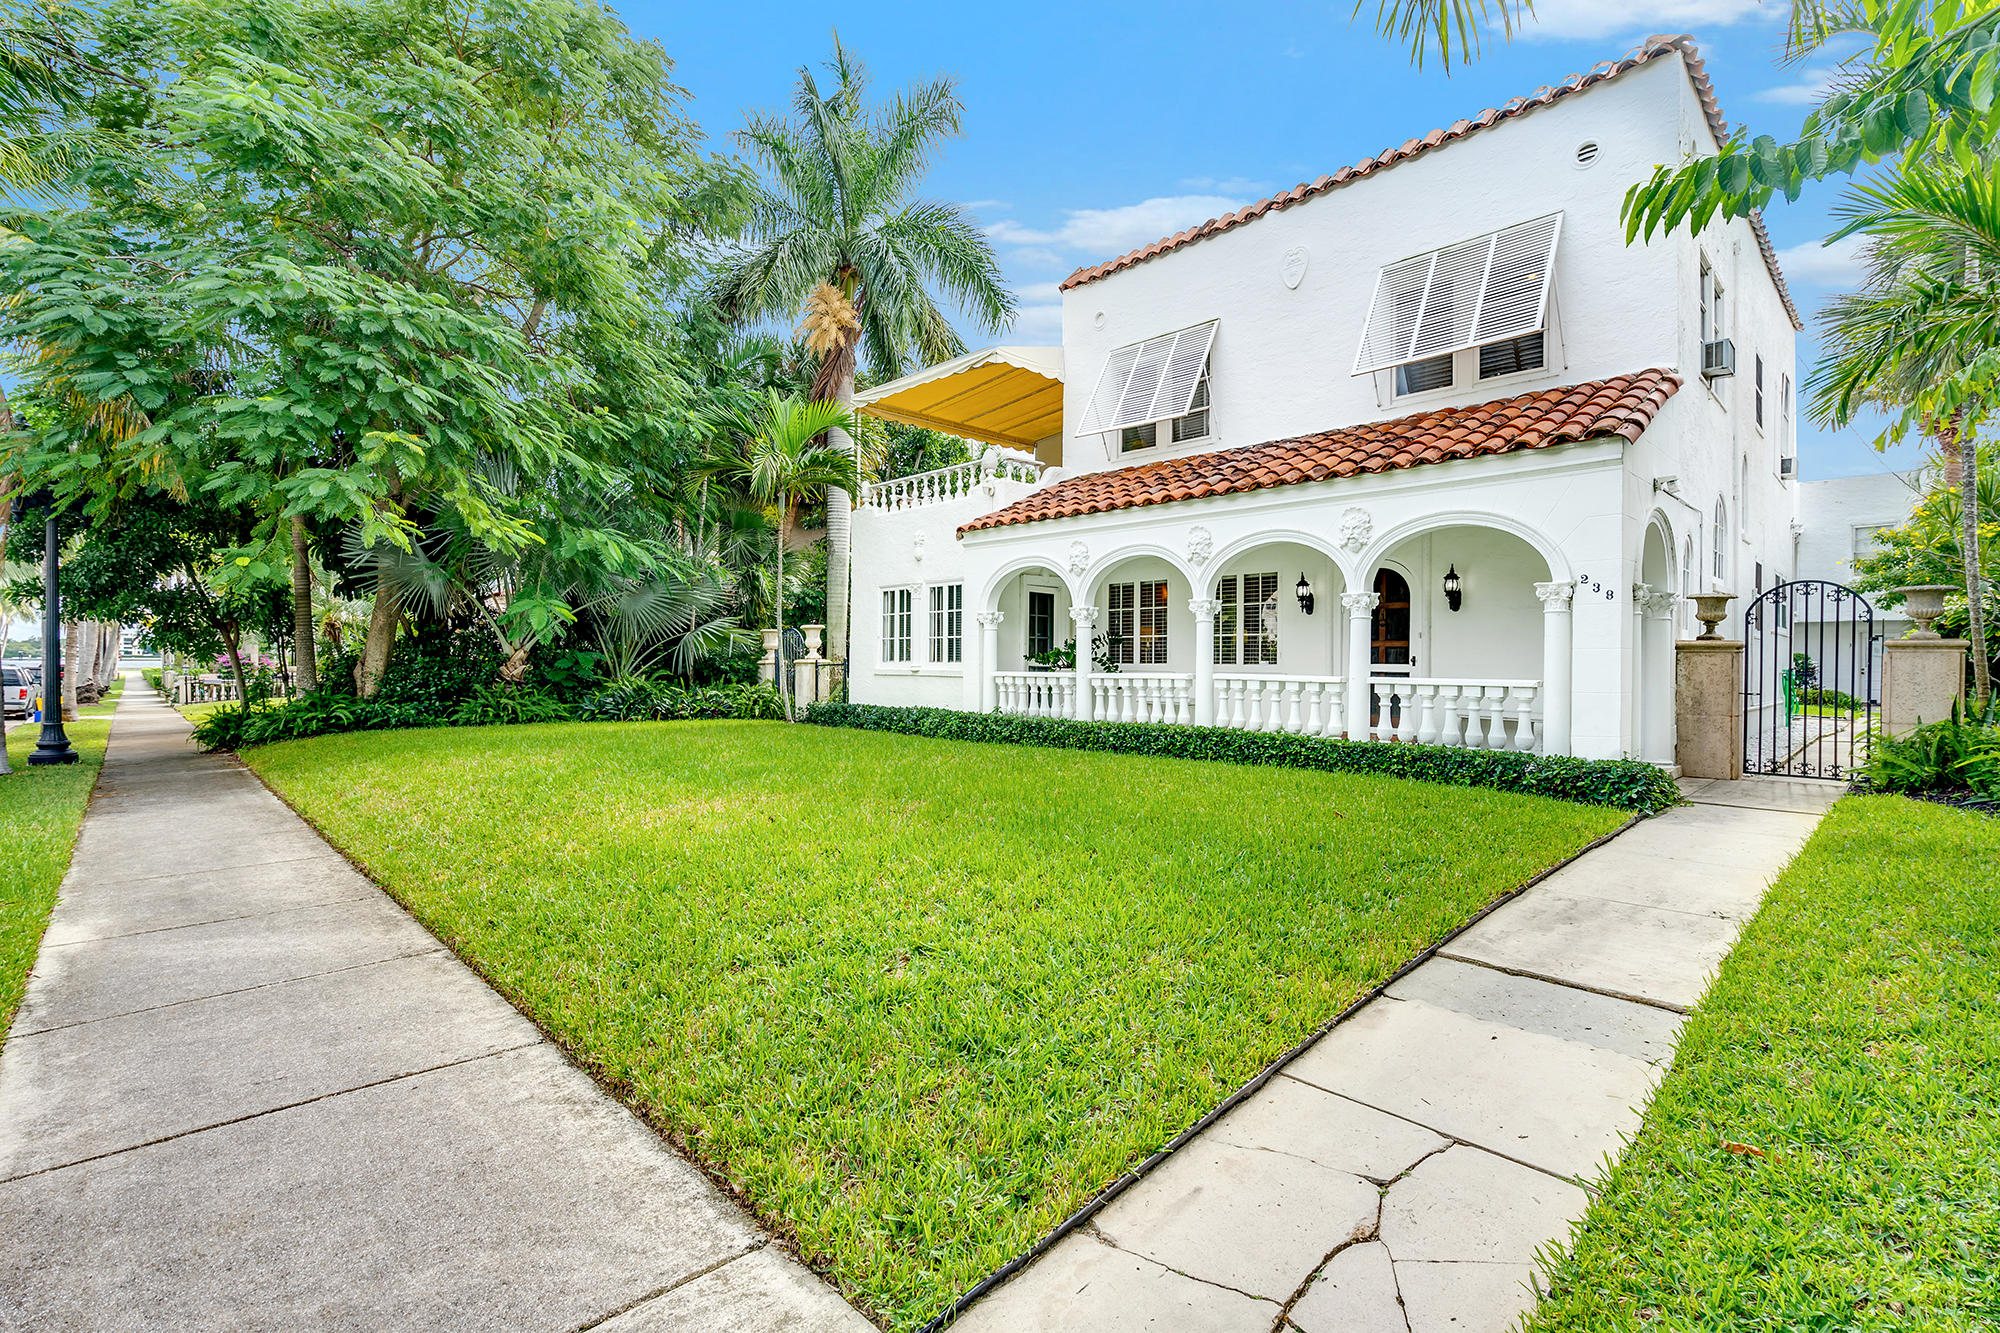 238 9th Street, West Palm Beach, Florida 33401, 4 Bedrooms Bedrooms, ,3 BathroomsBathrooms,Single Family,For Sale,9th,RX-10647532